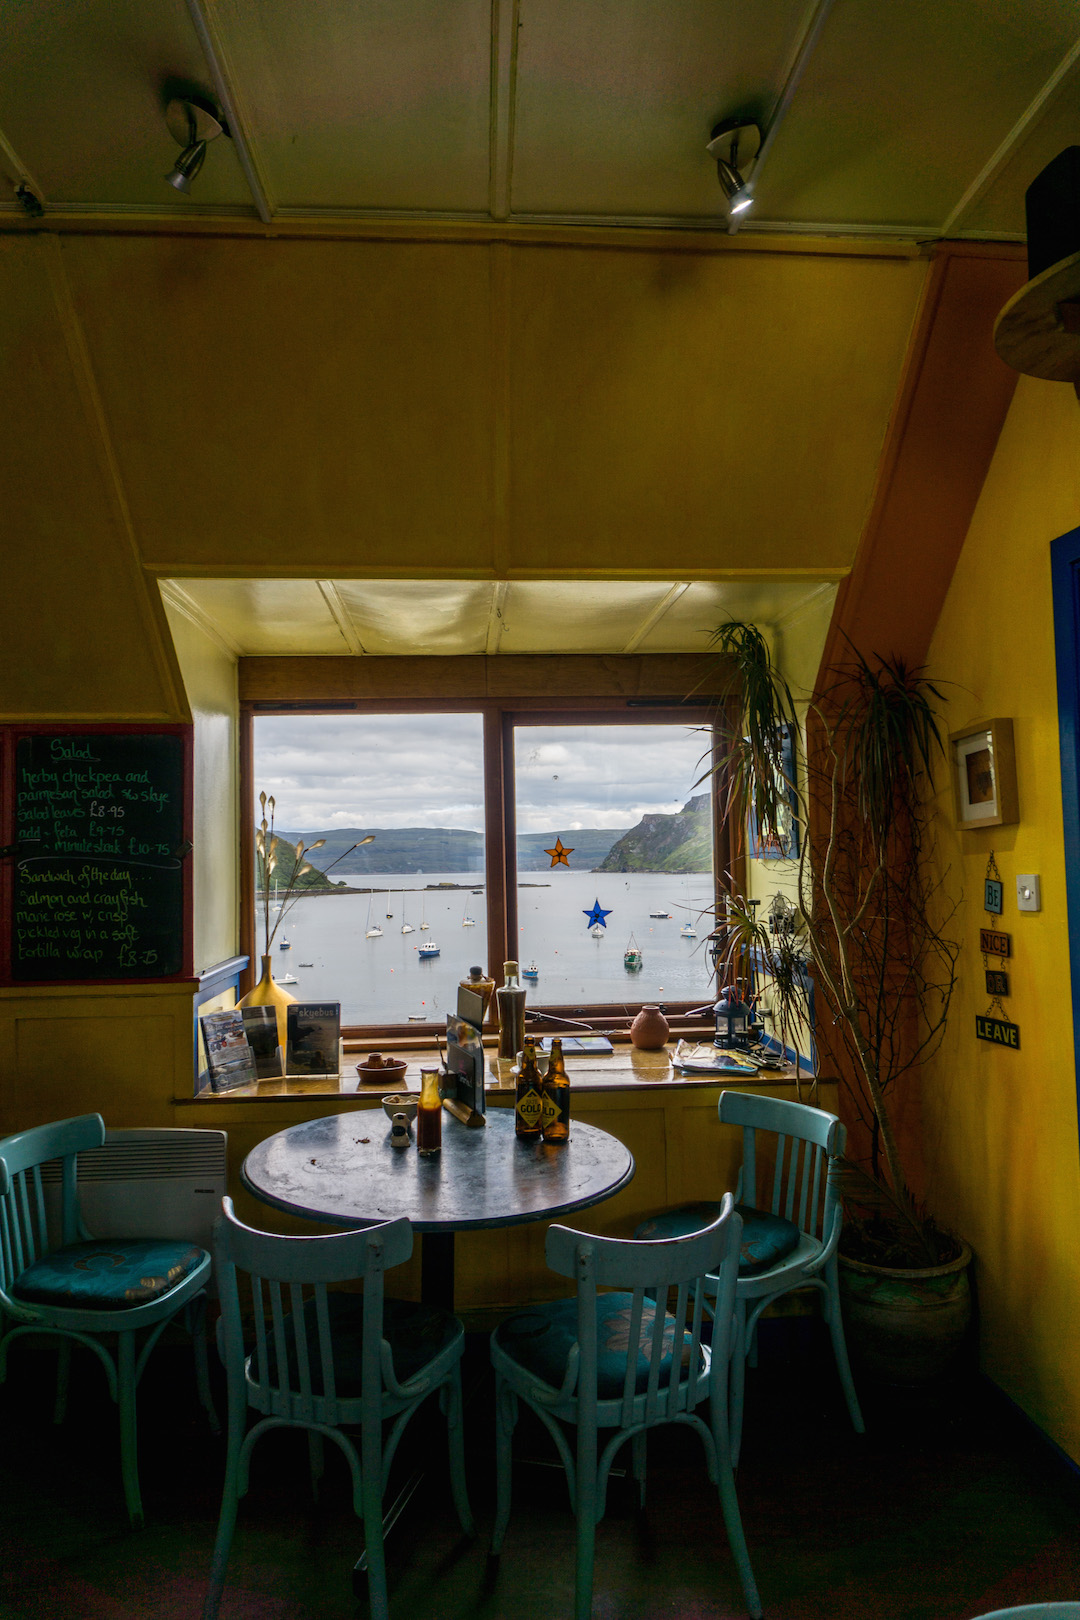 Views from a cafe in Portree